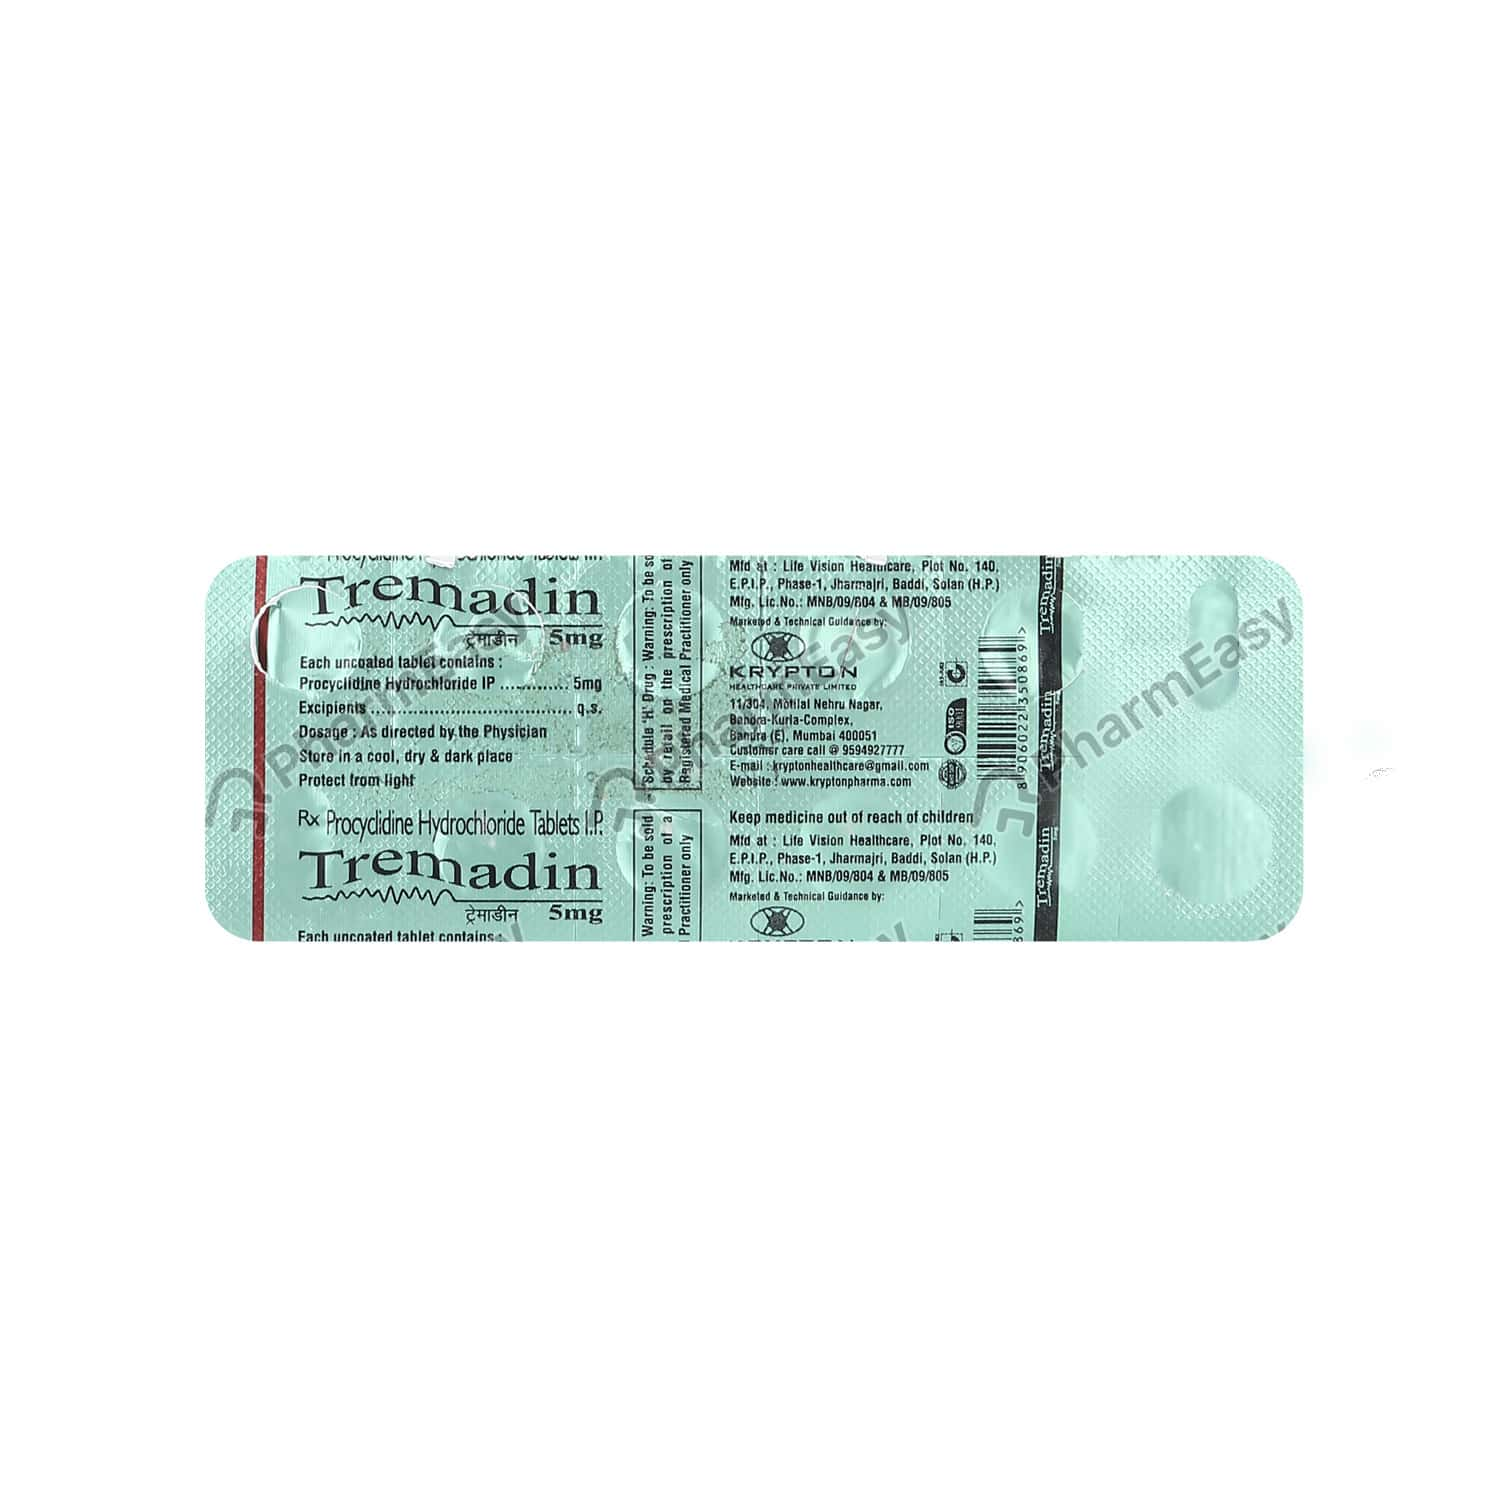 Tremadin 5mg Tablet